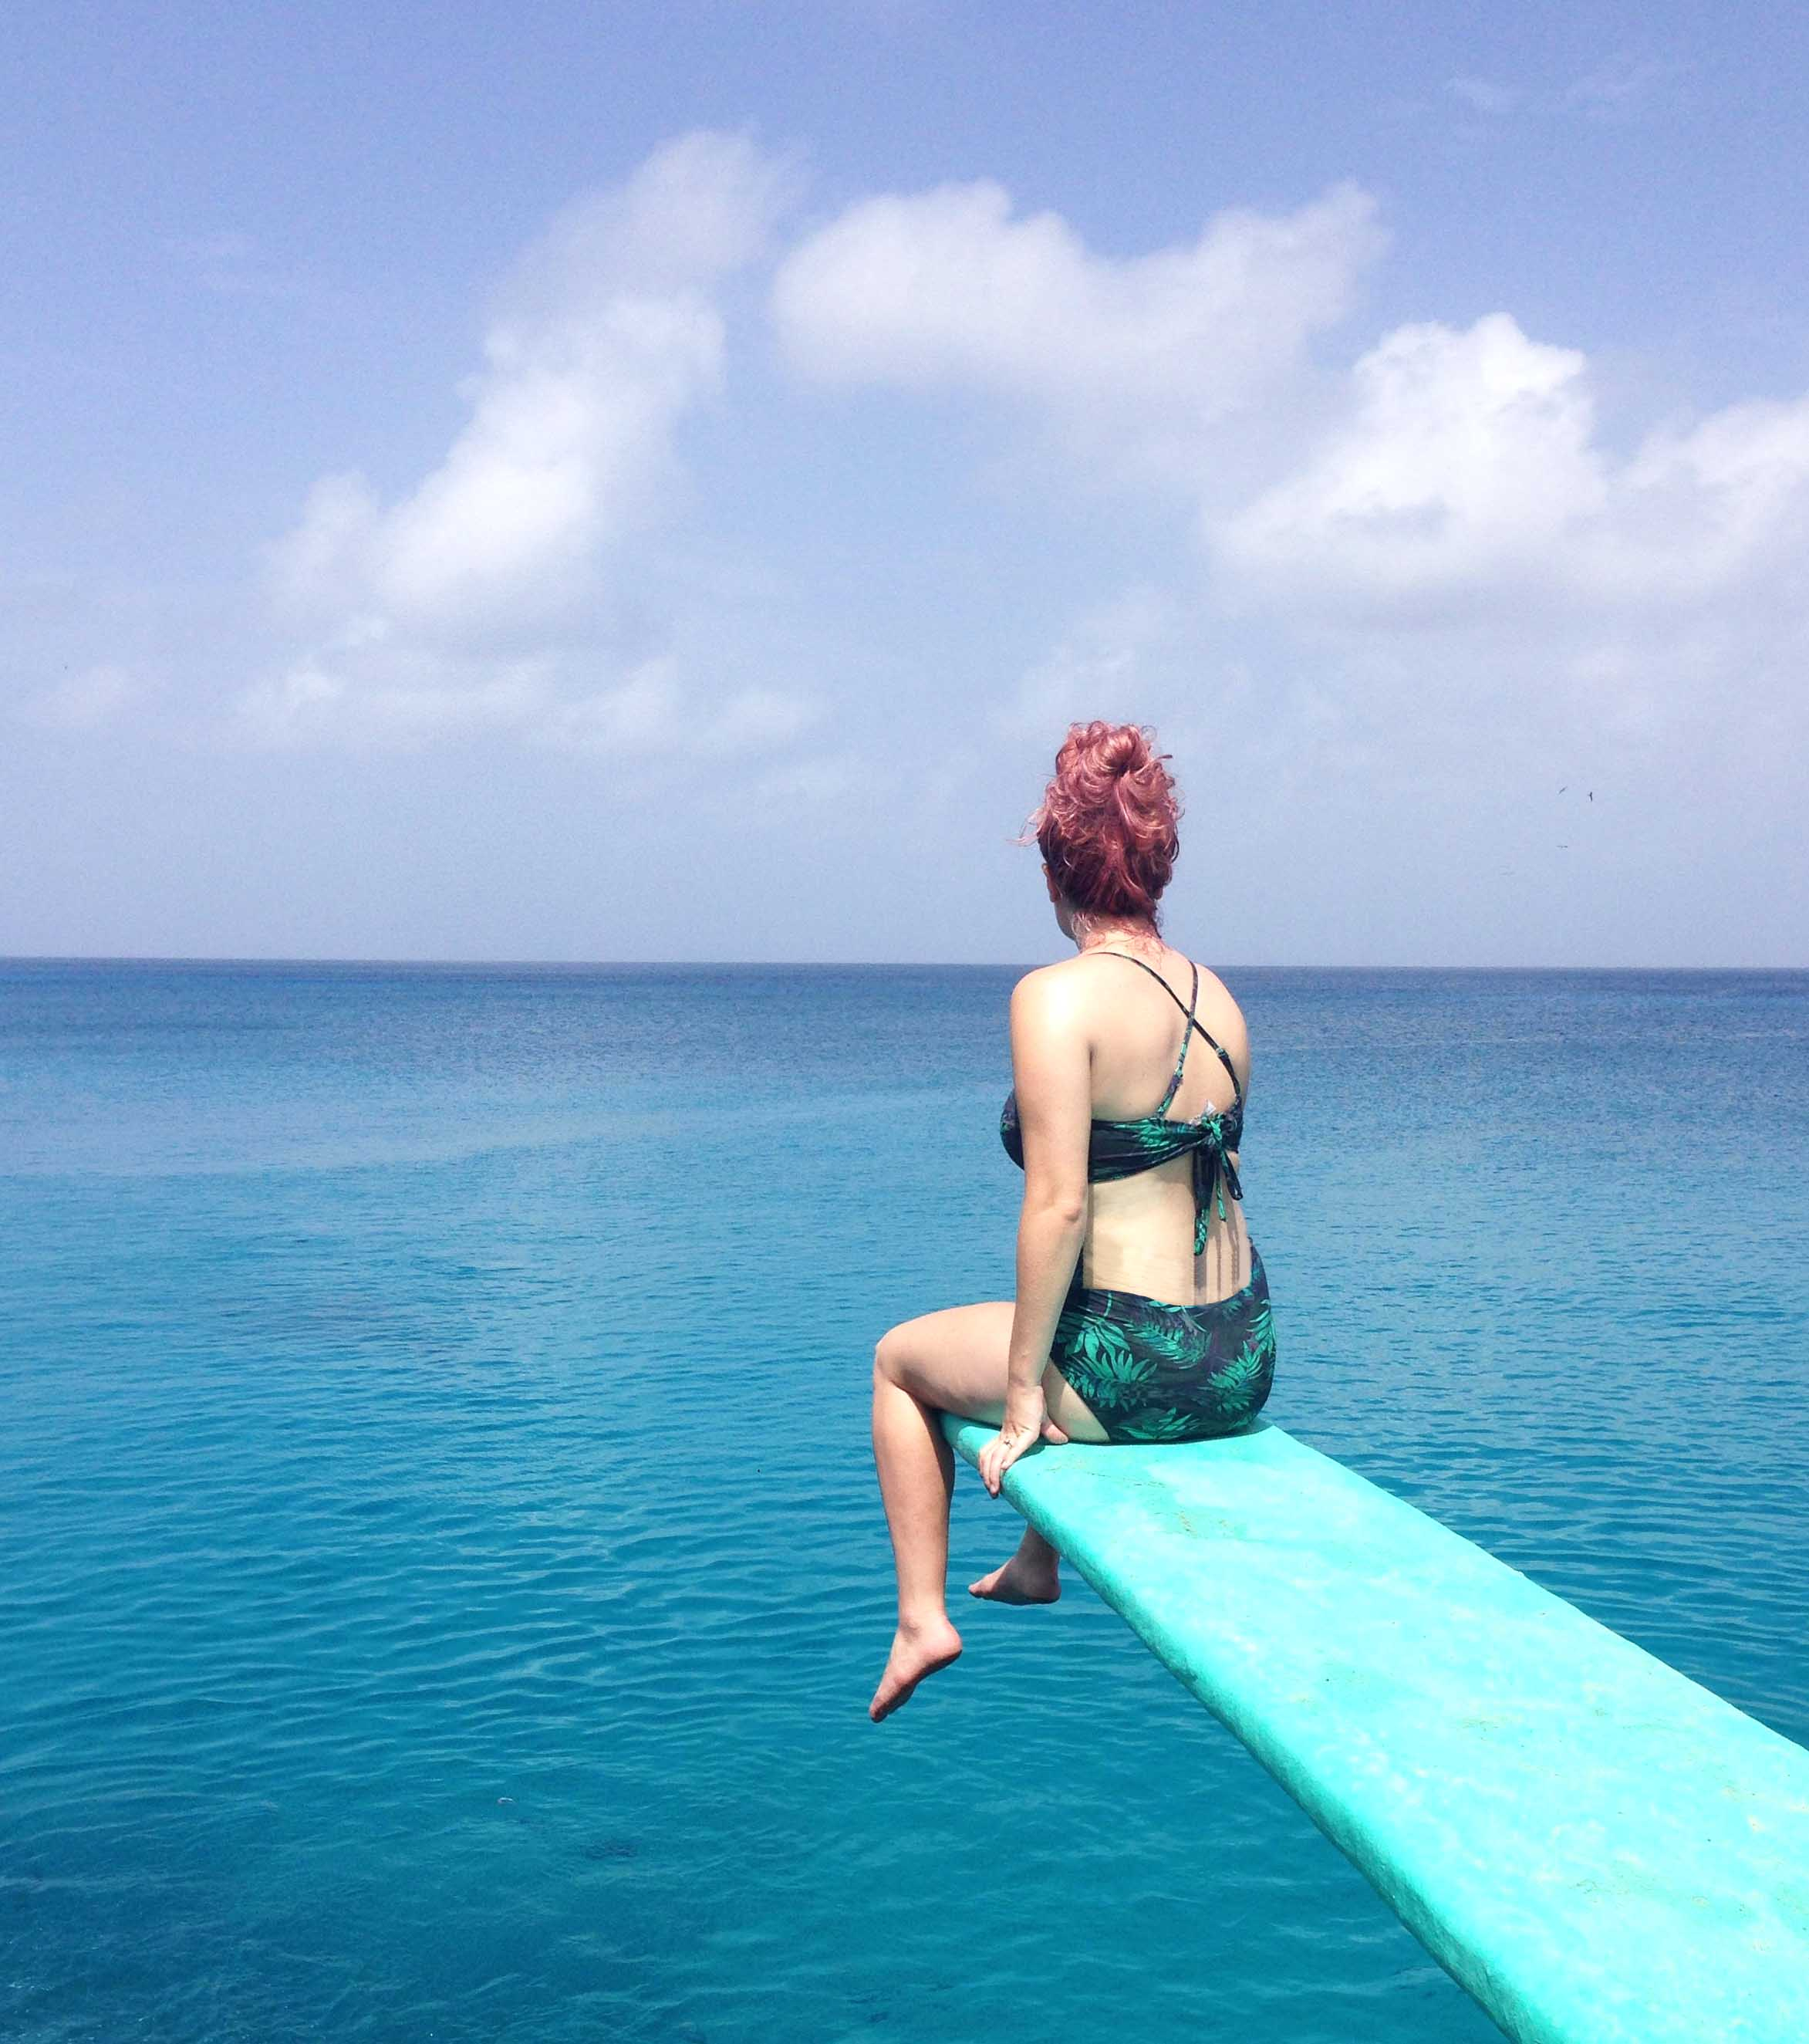 san andres island guide: diving board in the ocean